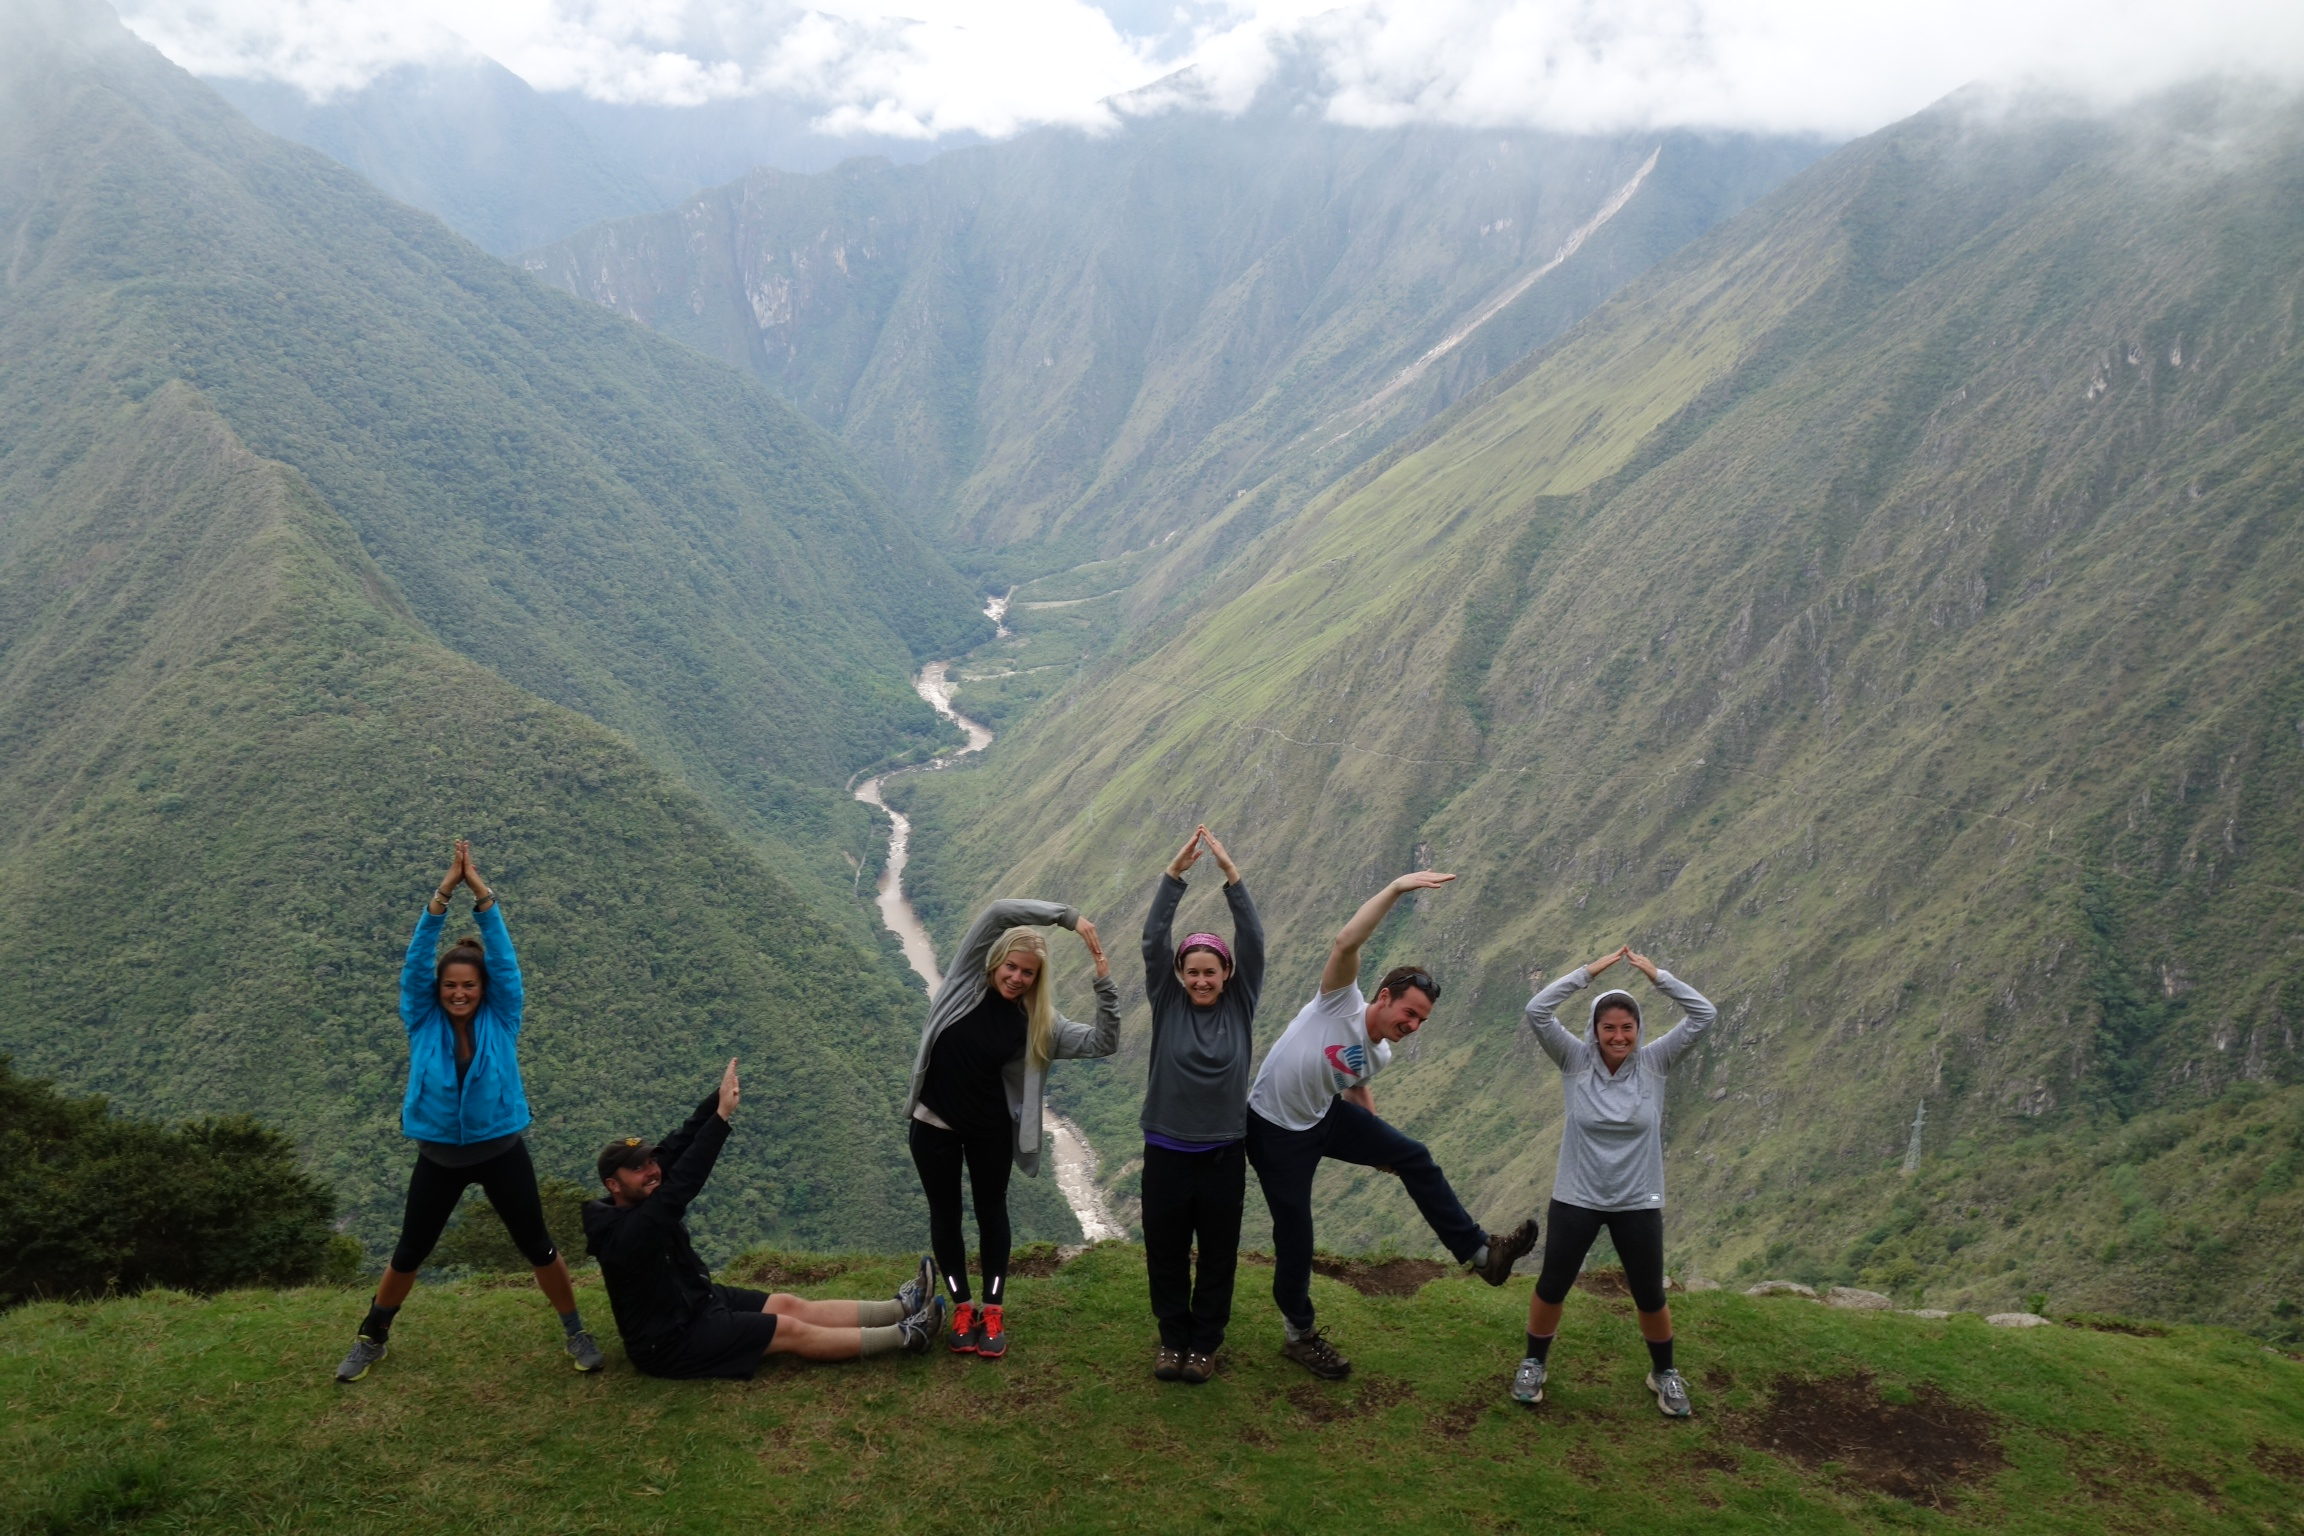 Press Trips to Trek the Inca Trail are Now Available !